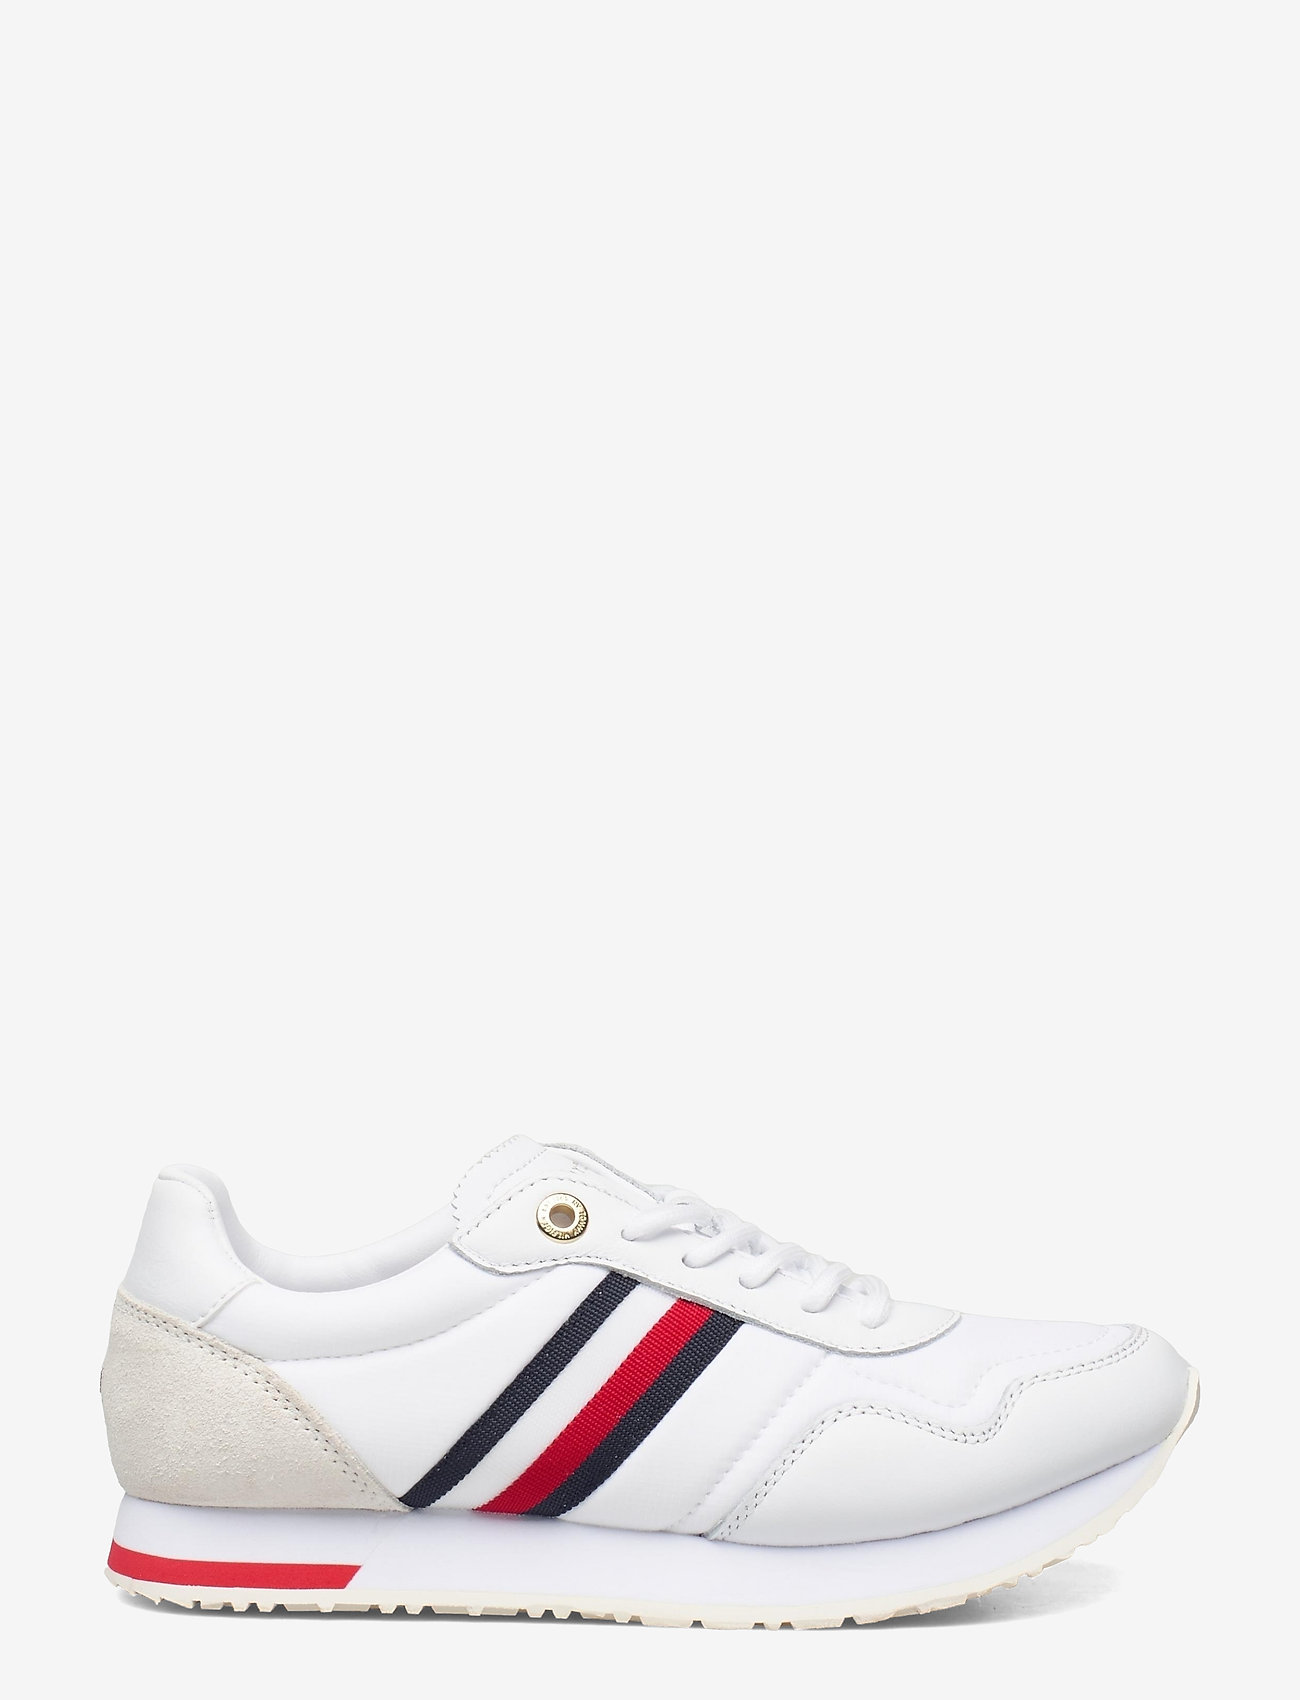 Tommy Hilfiger - CASUAL CITY RUNNER - low top sneakers - white - 1